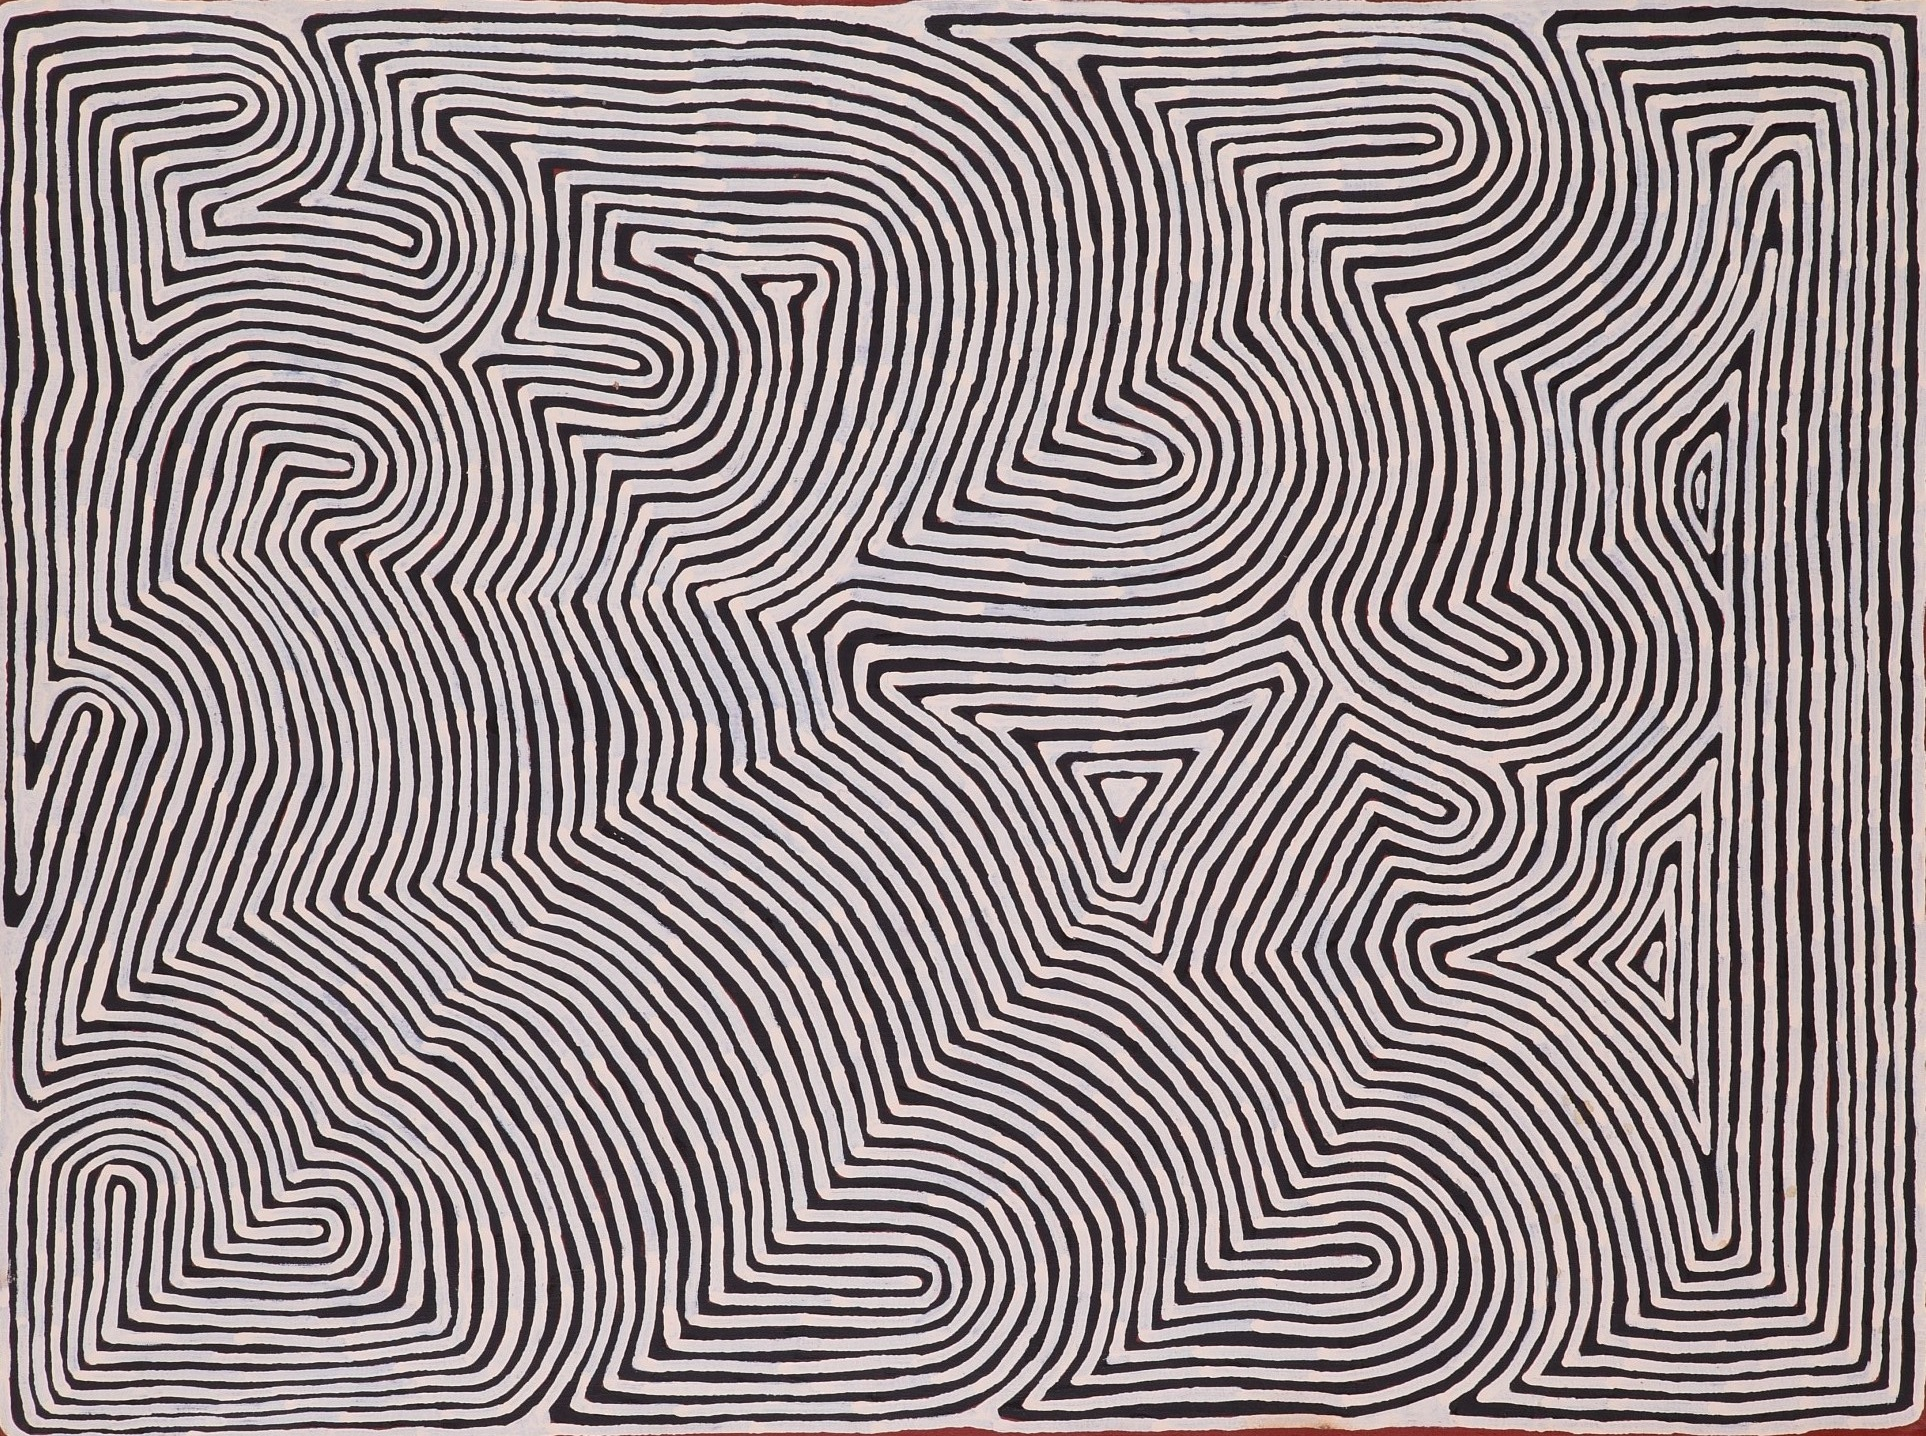 Ronnie Tjampitjinpa  Untitled  48 x 36 inches (122 x 91 cm) Acrylic on Belgian linen Papunya Tula Artists Catalog #RT1211003   EMAIL INQUIRY